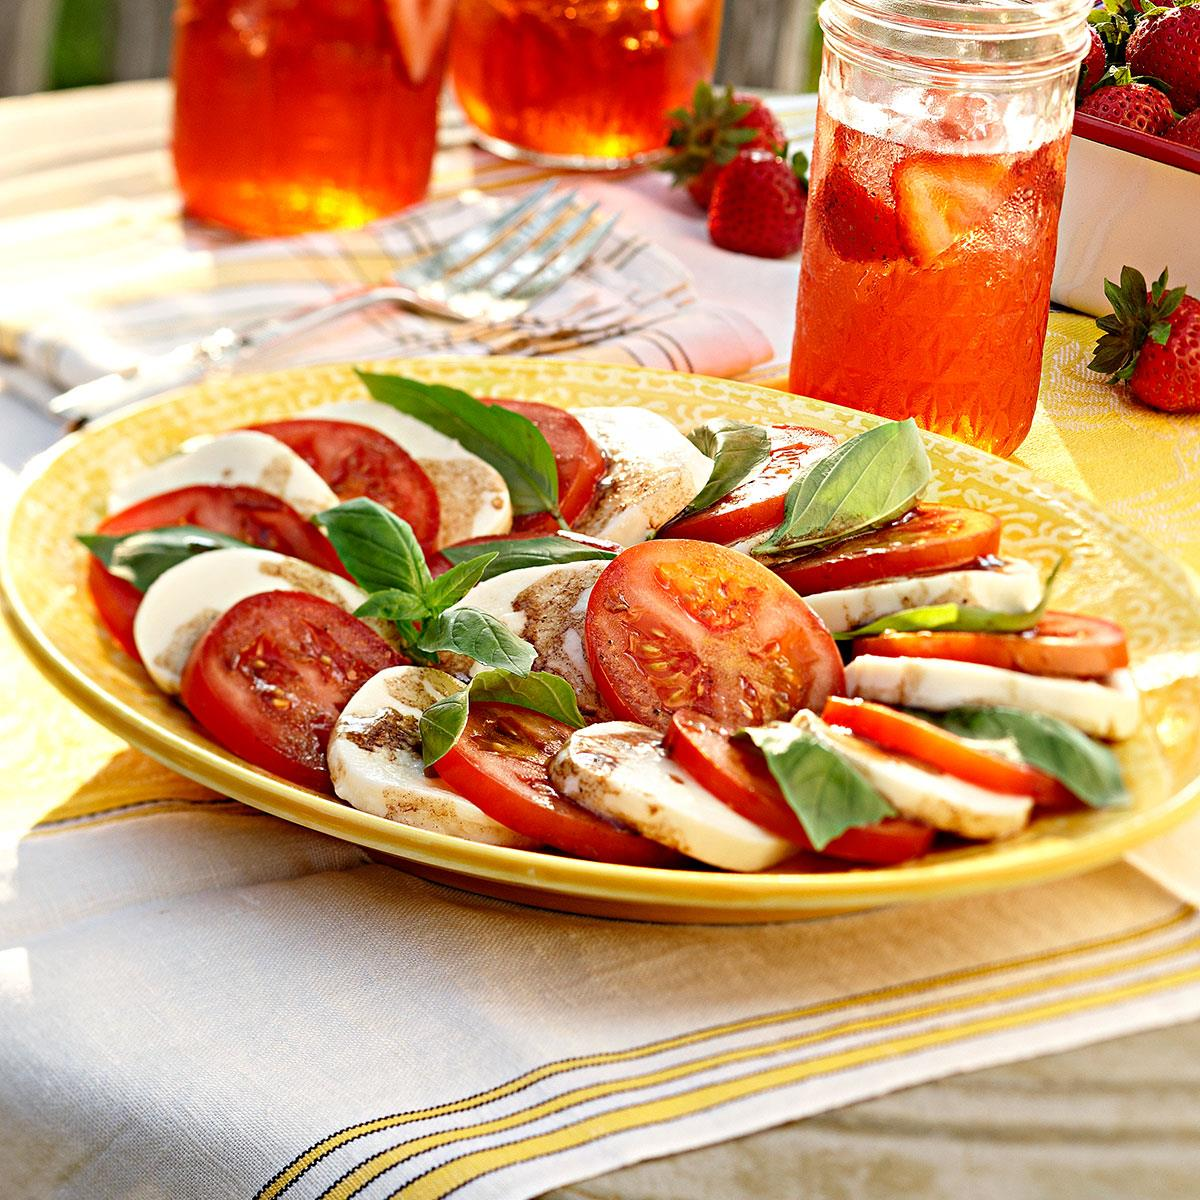 Watch How to Make Caprese Salad video